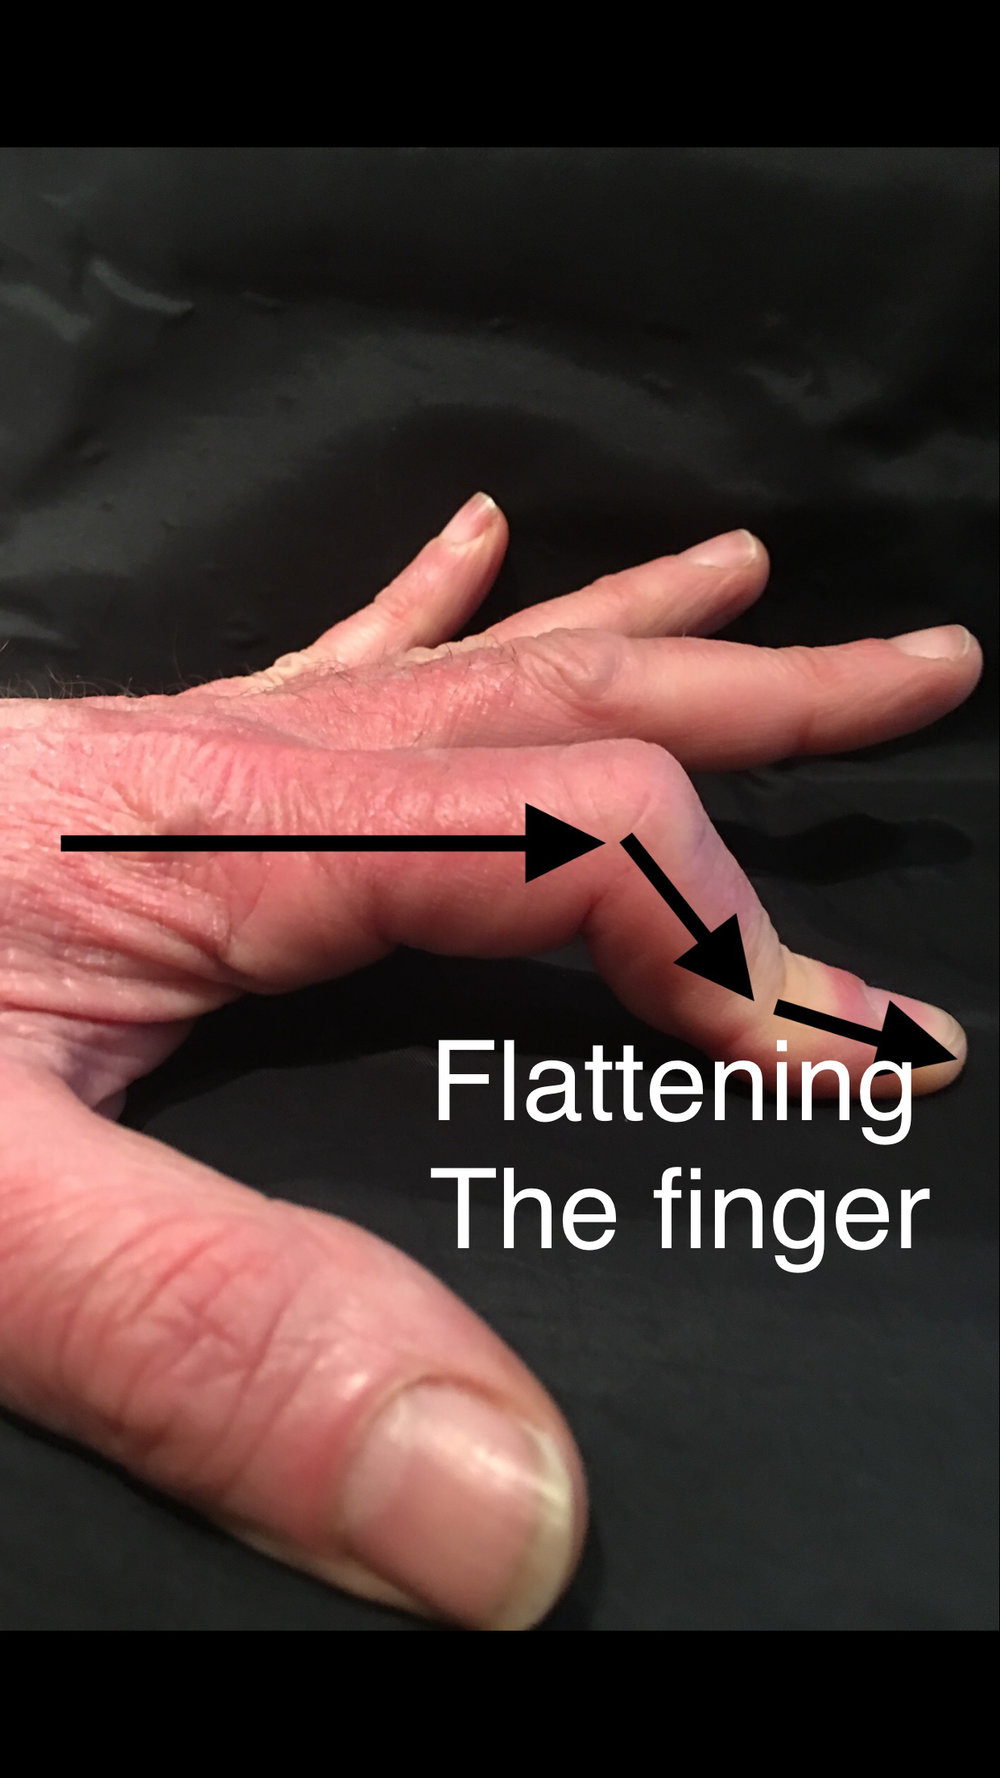 flatten finger   - Left hand exercise to learn to flatten the finger, which is key to being able to bridge across 3 strings using only one finger.